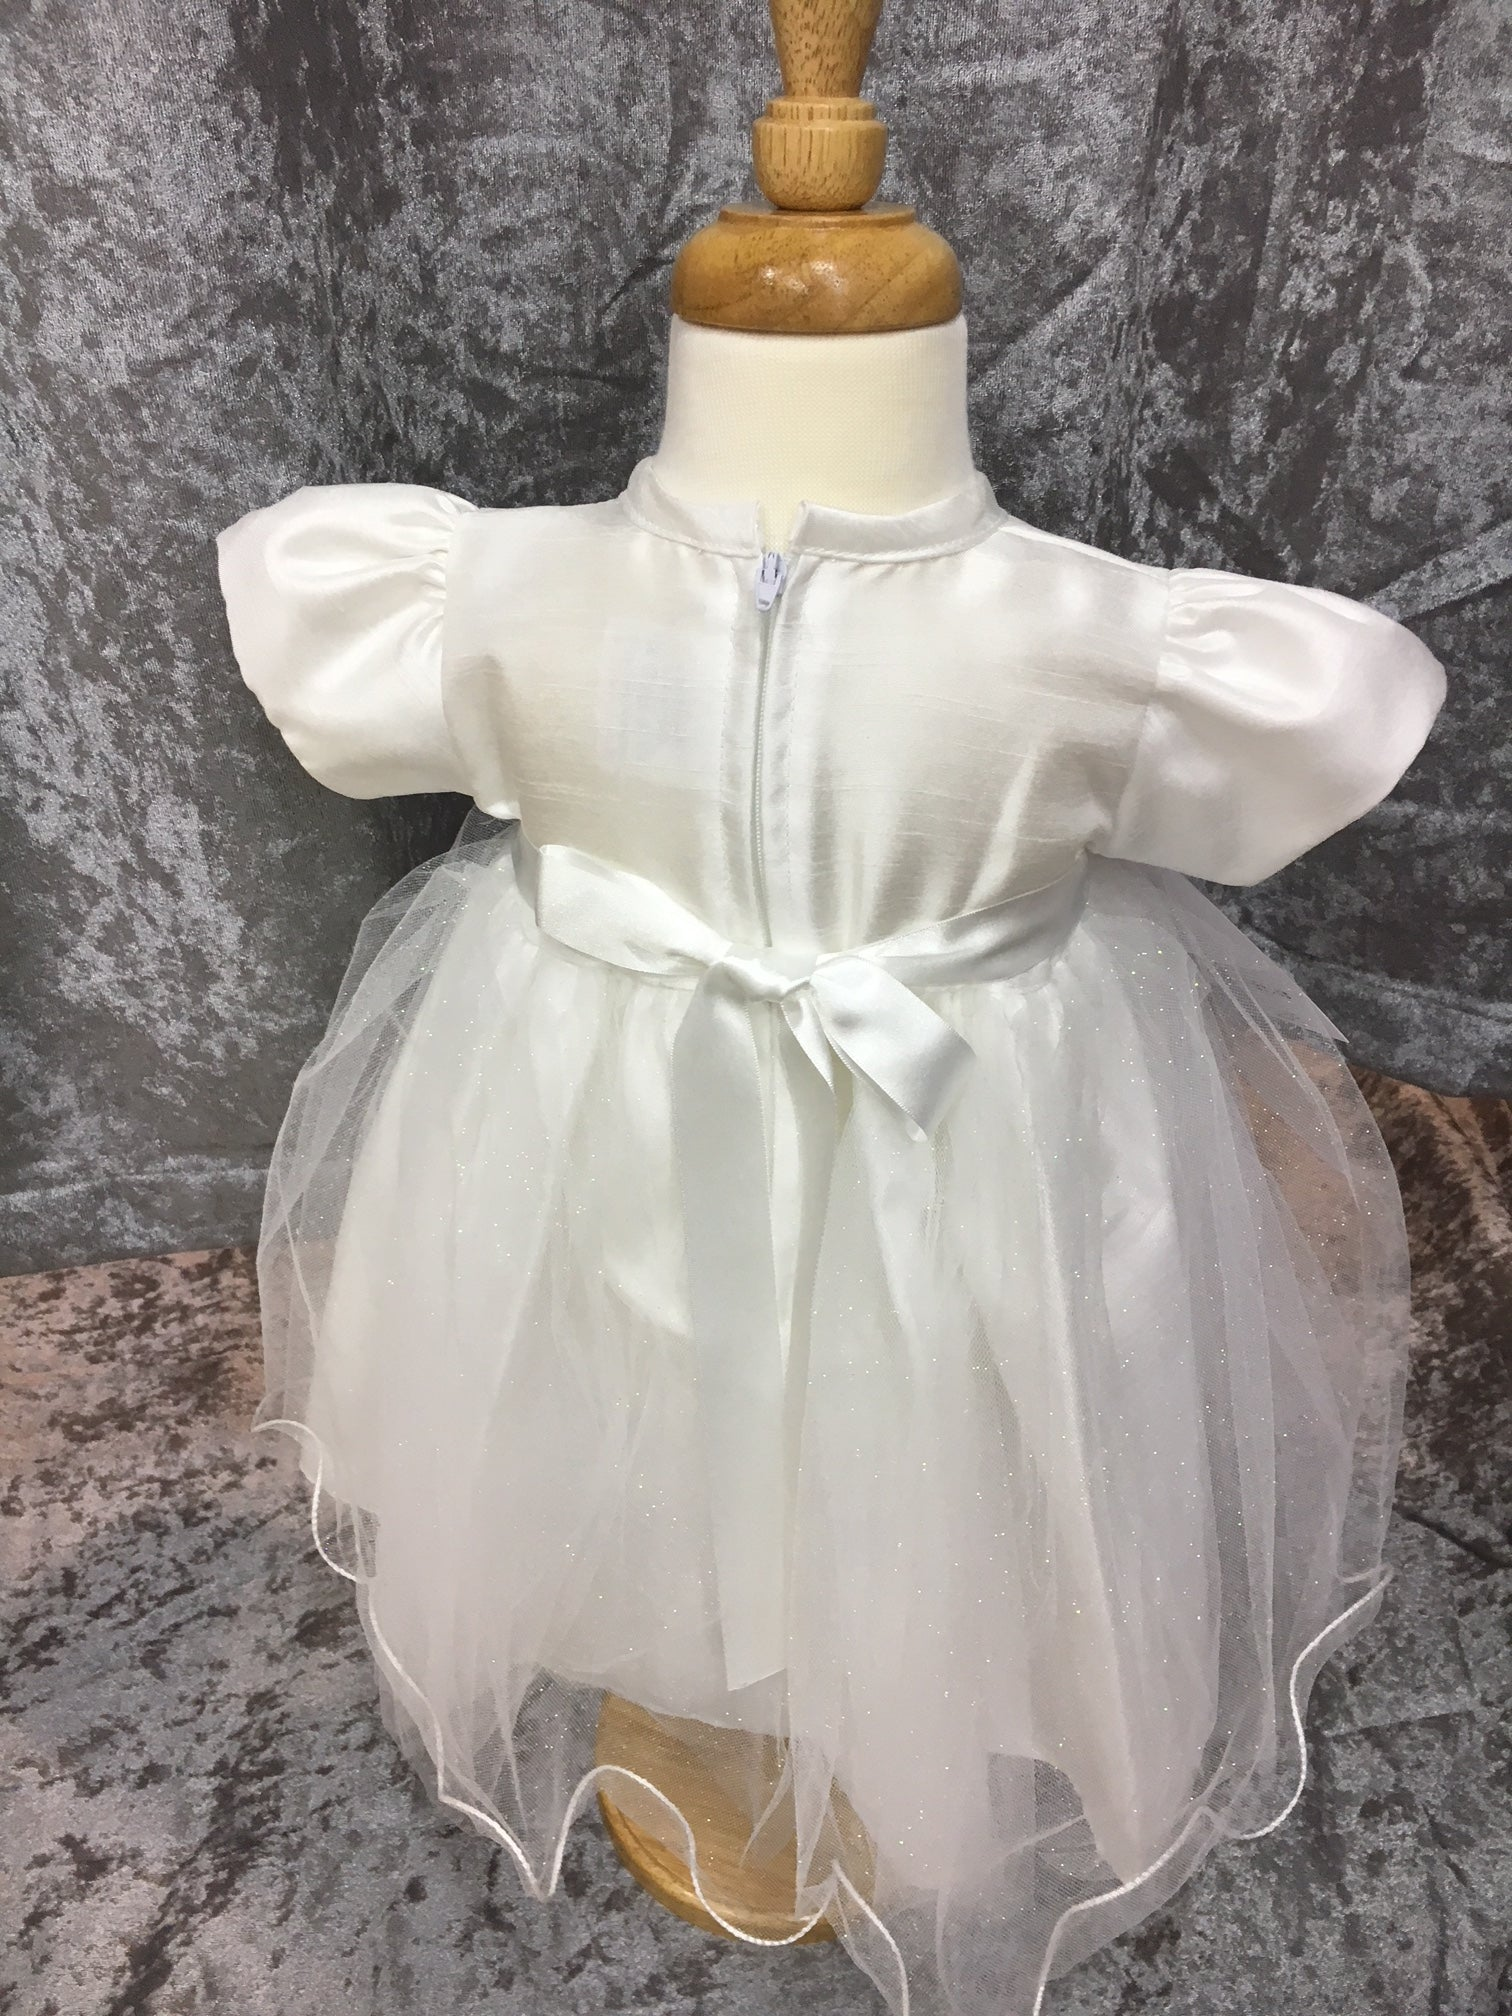 273c4fd818767 ... Baby Girls White Satin Bow and Sparkle Dress Occasion wear Only £27  Newborn up to